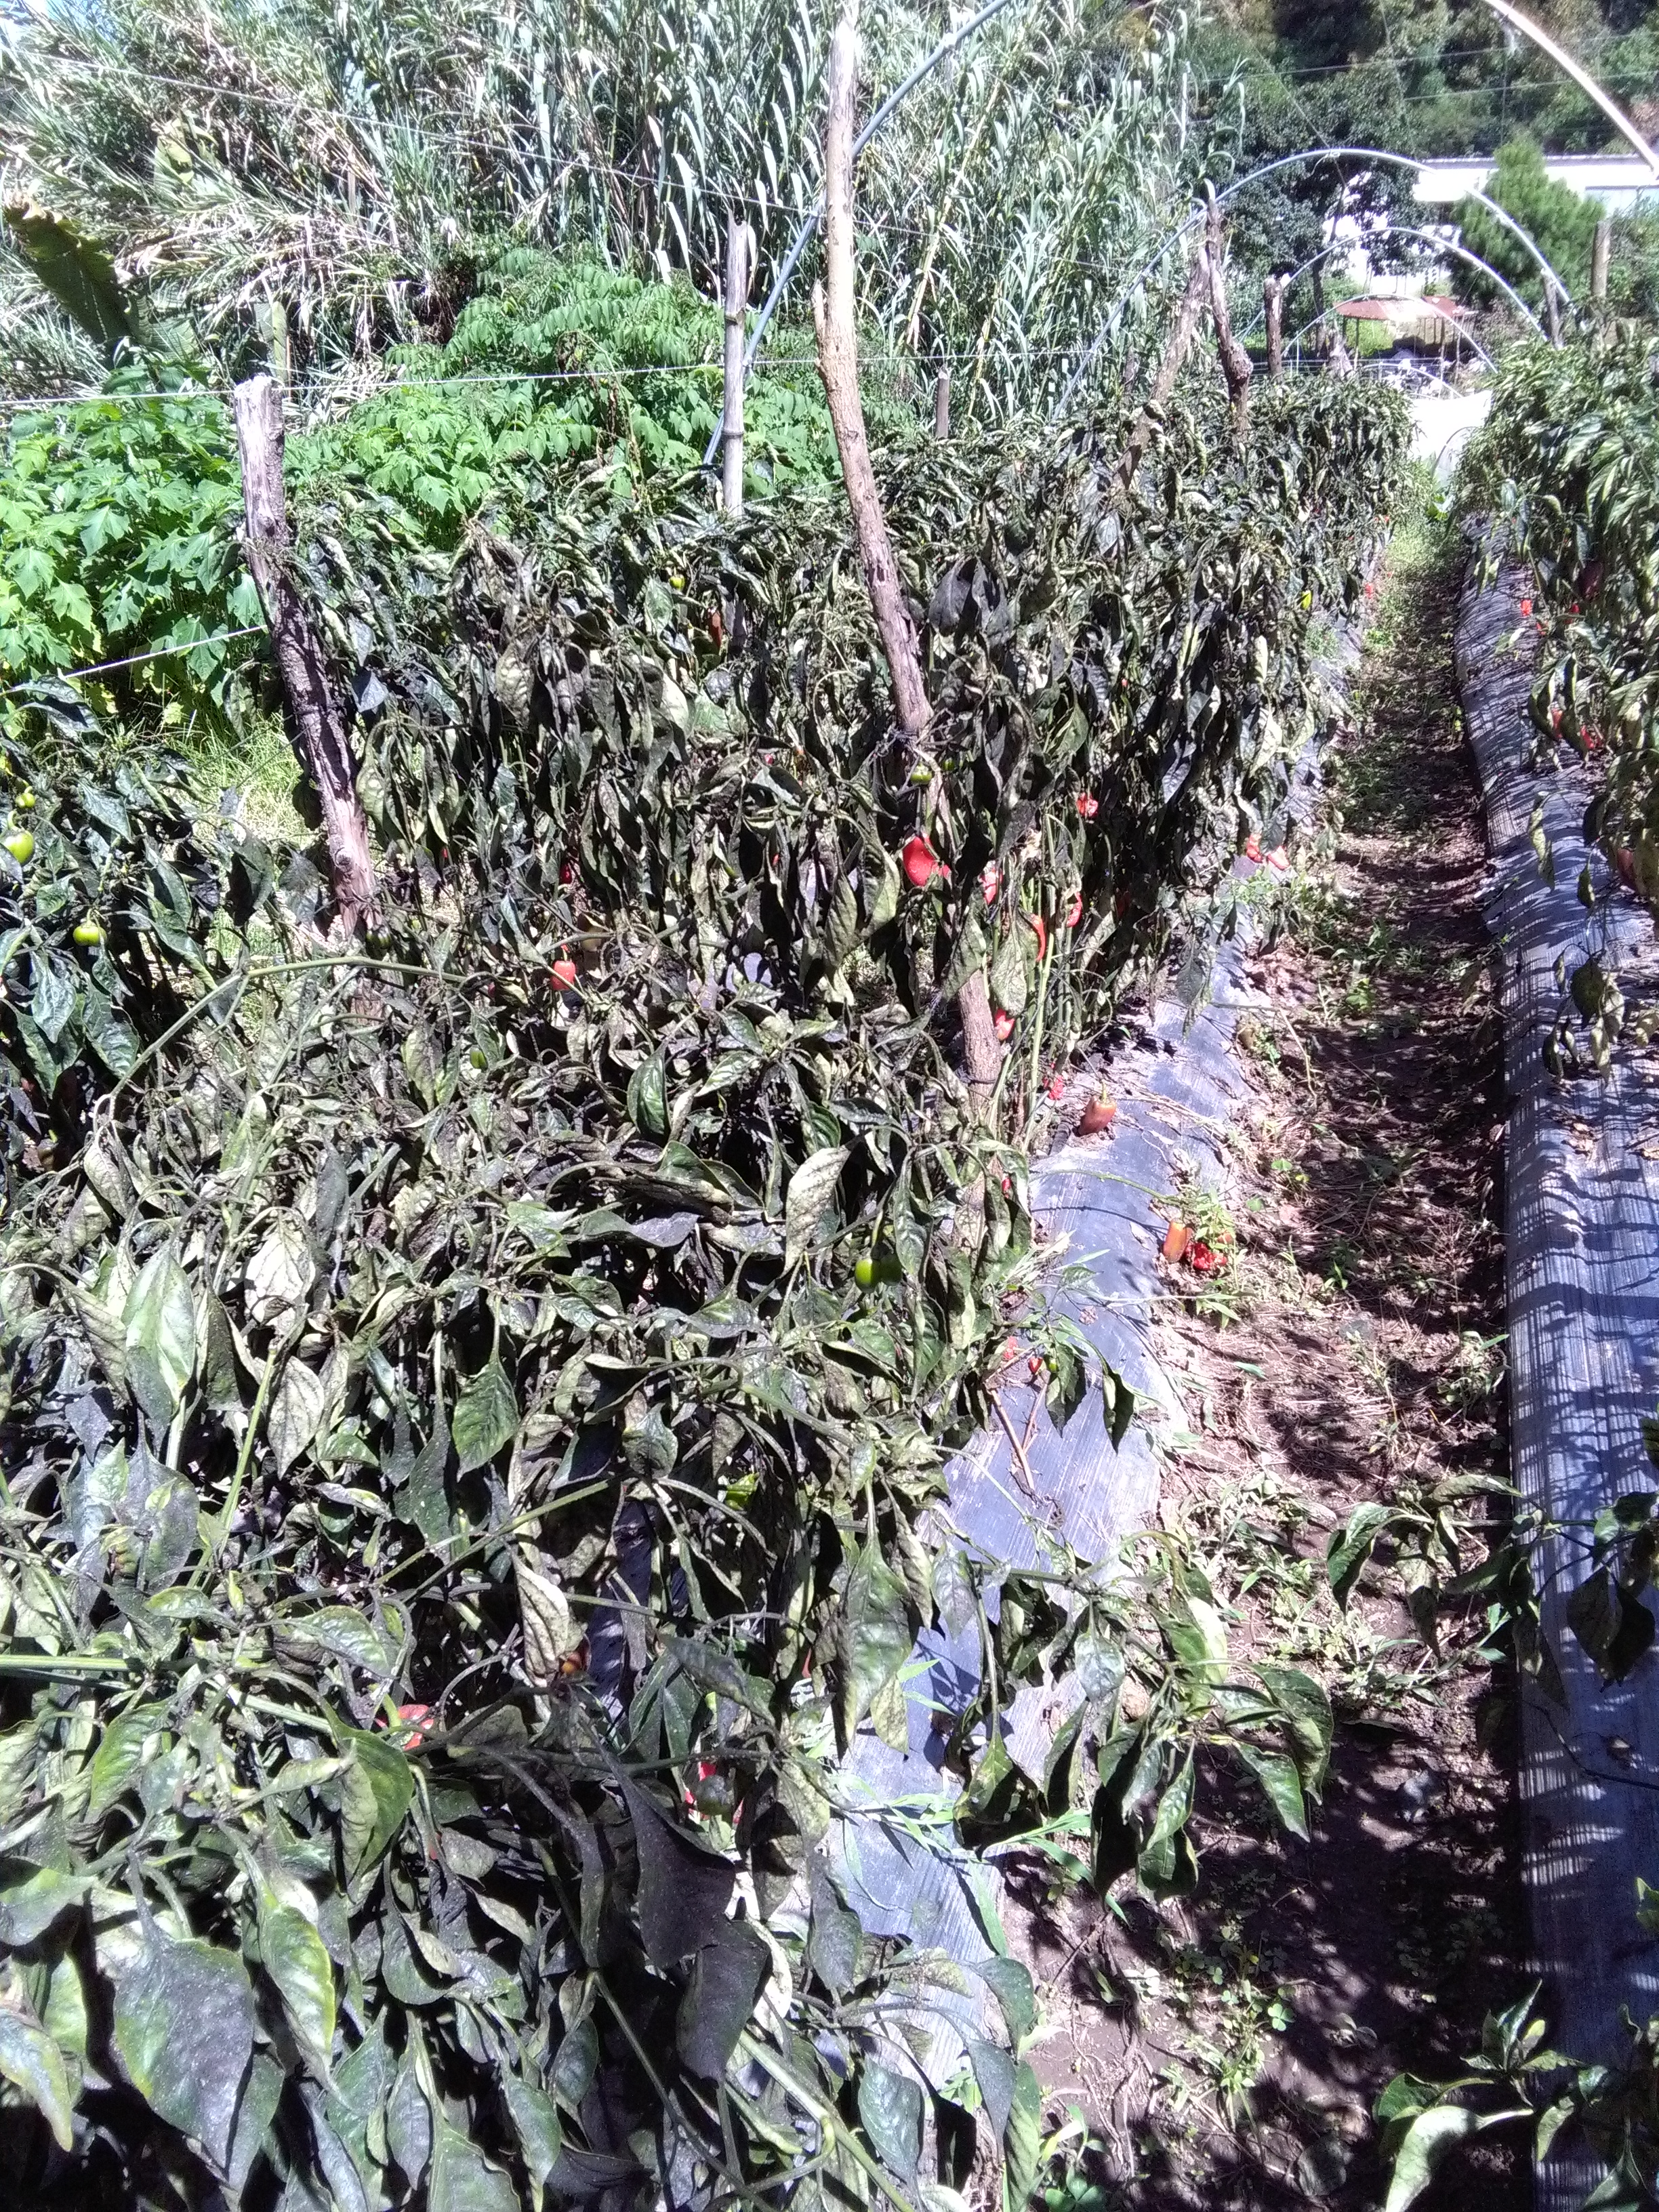 Black leaves of bell pepper infested by possible whitefly and aphids.